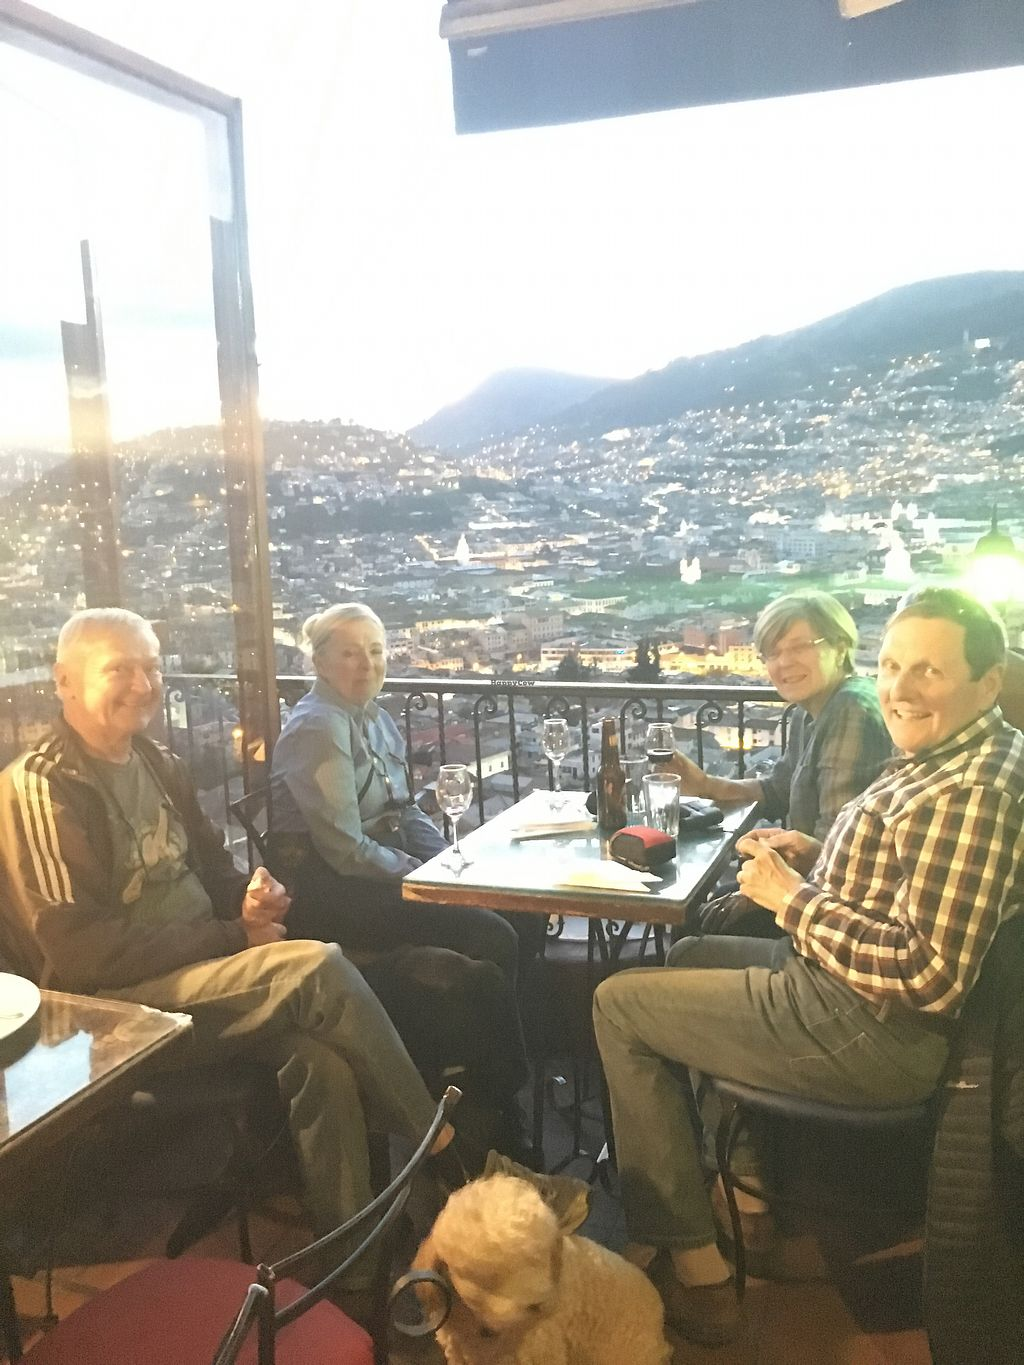 """Photo of Cafe Mosaico  by <a href=""""/members/profile/DianaGodoy"""">DianaGodoy</a> <br/>Enjoy the most spectacular sunset <br/> September 25, 2017  - <a href='/contact/abuse/image/101578/308086'>Report</a>"""